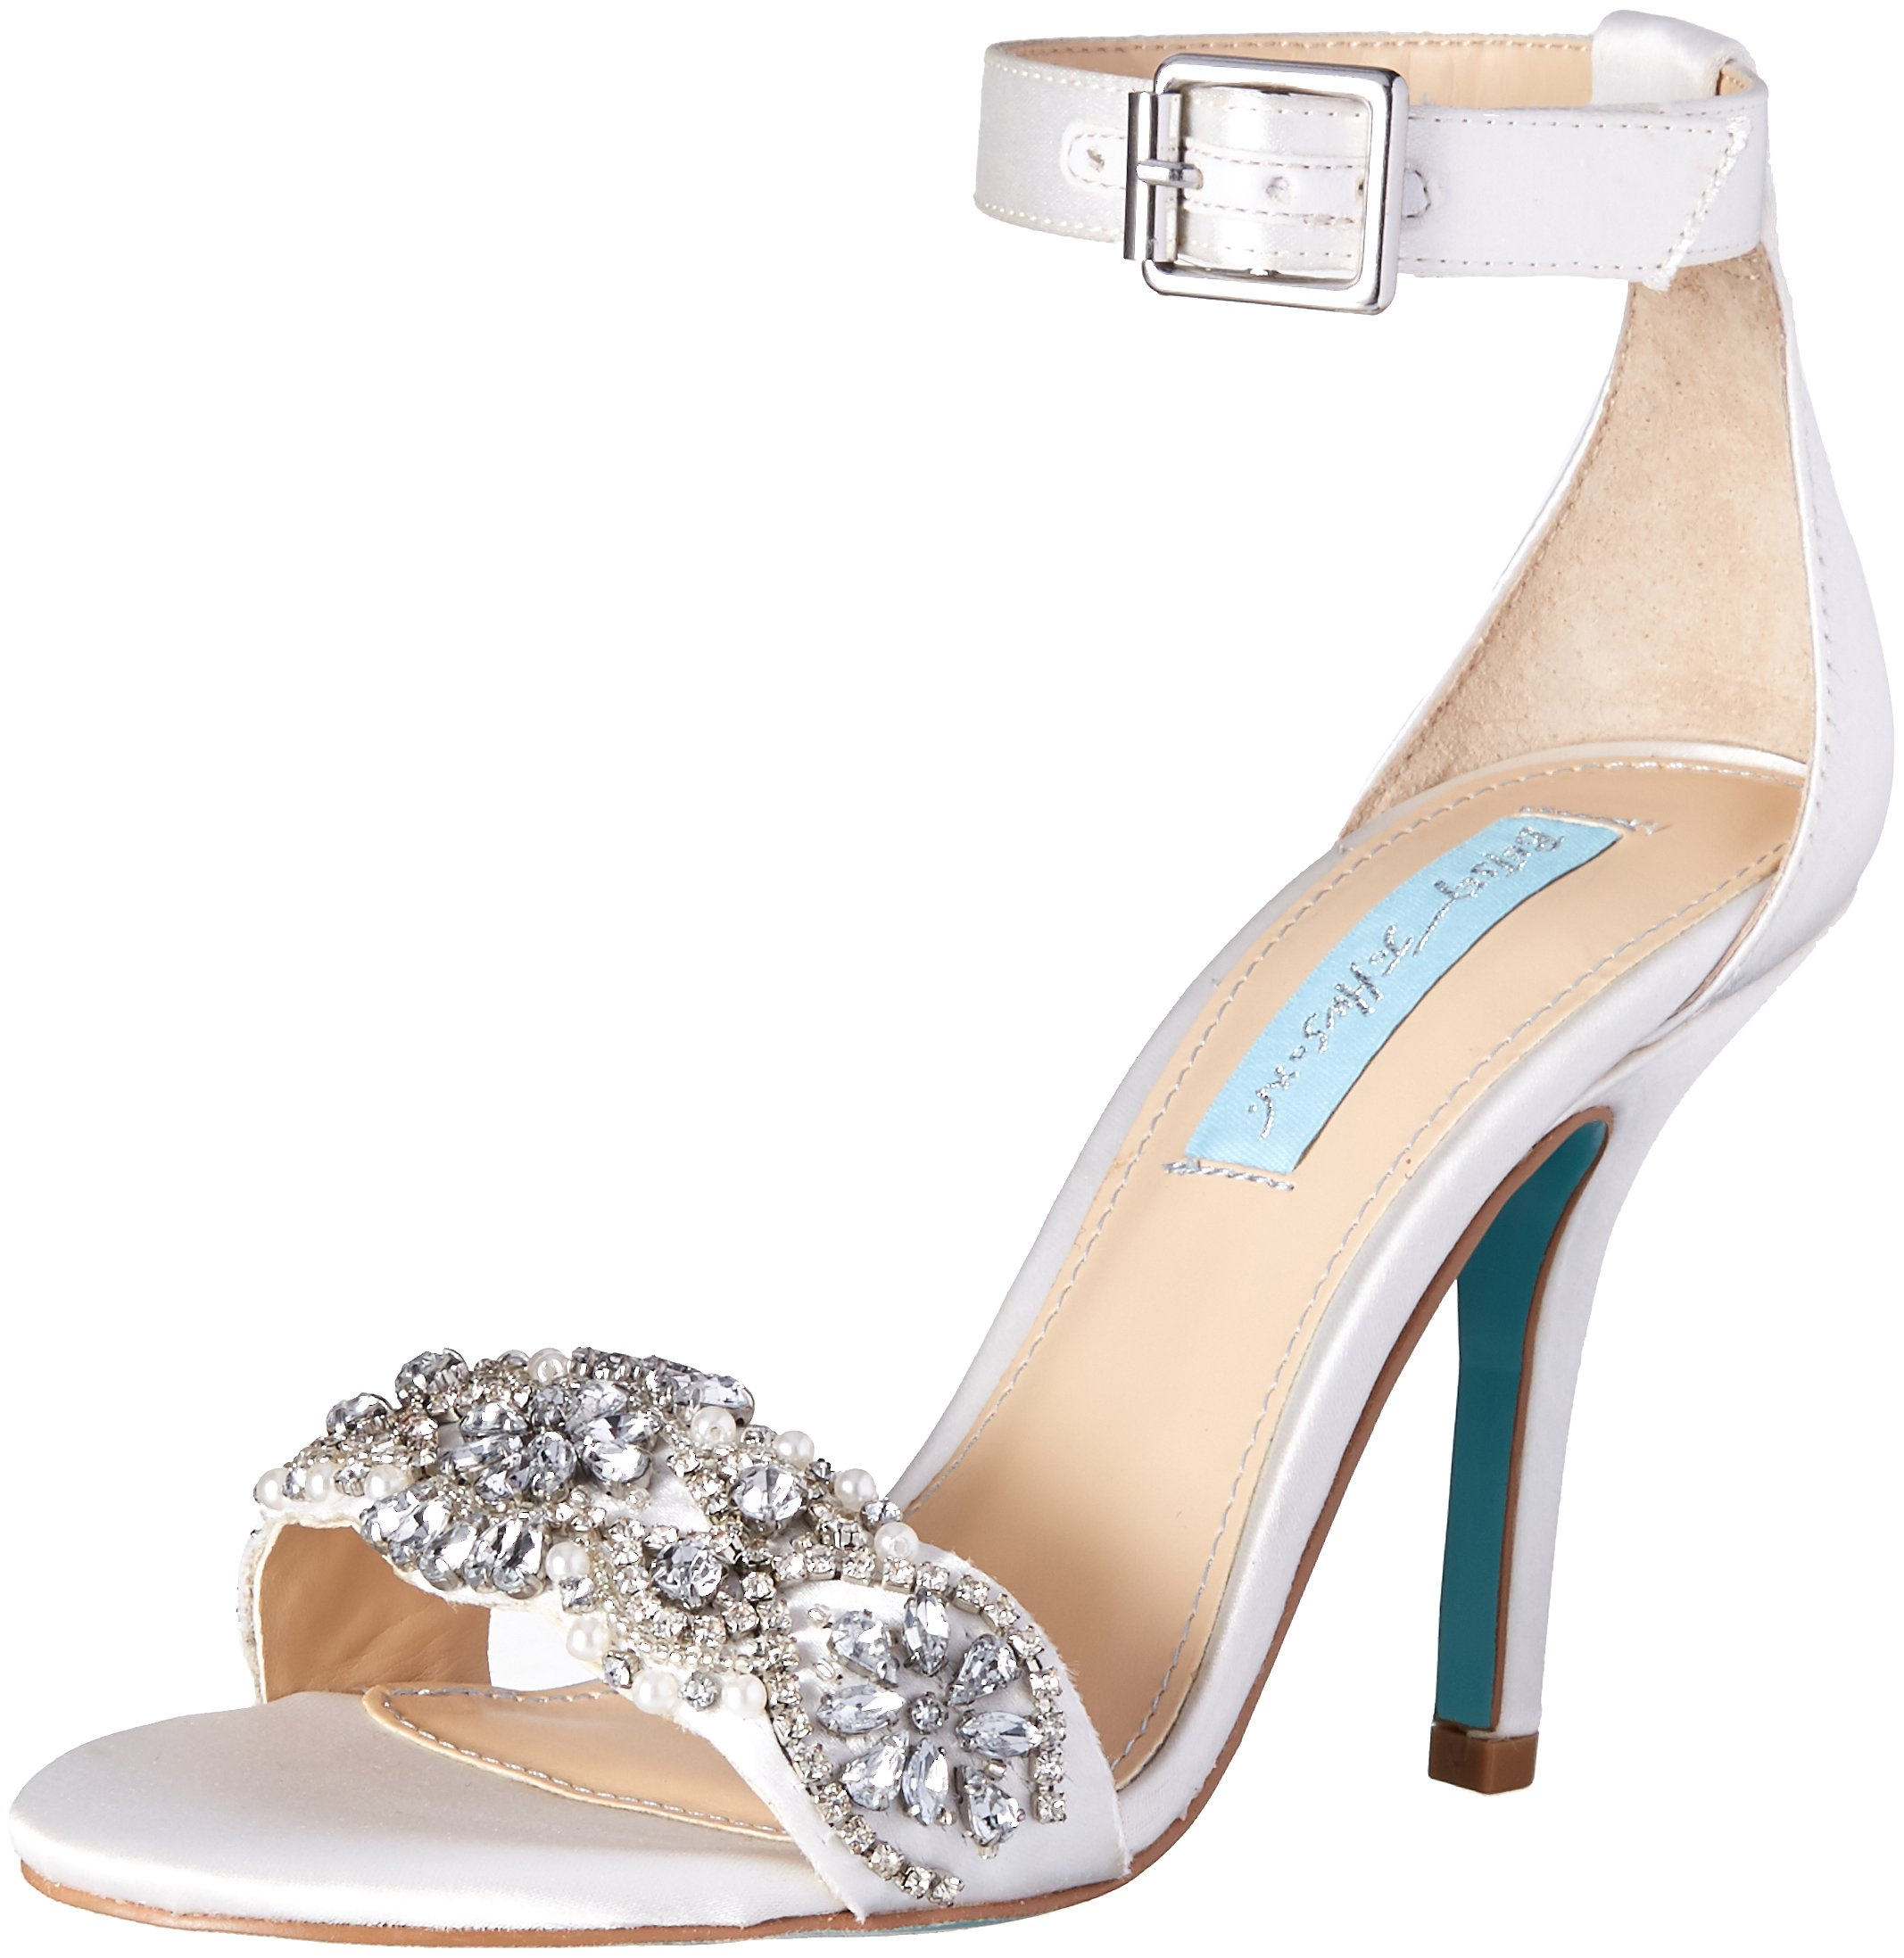 Blue by Betsey Johnson Women's SB-Gina Dress Sandal, Ivory, 5 M US